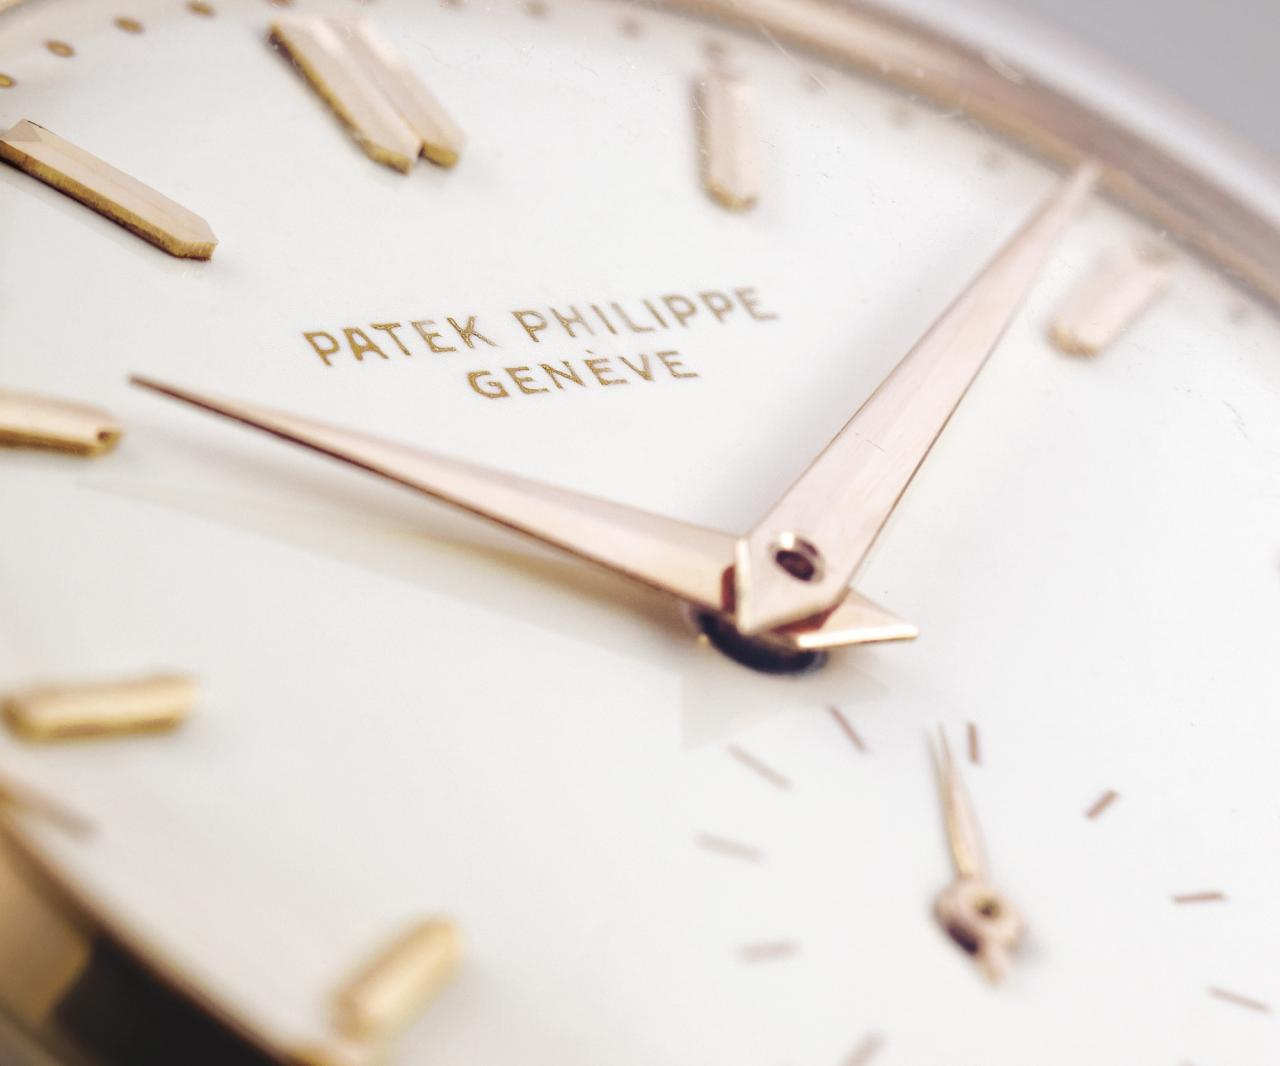 Patek Philippe Rose Gold Reference 2526 With Enamel Dial